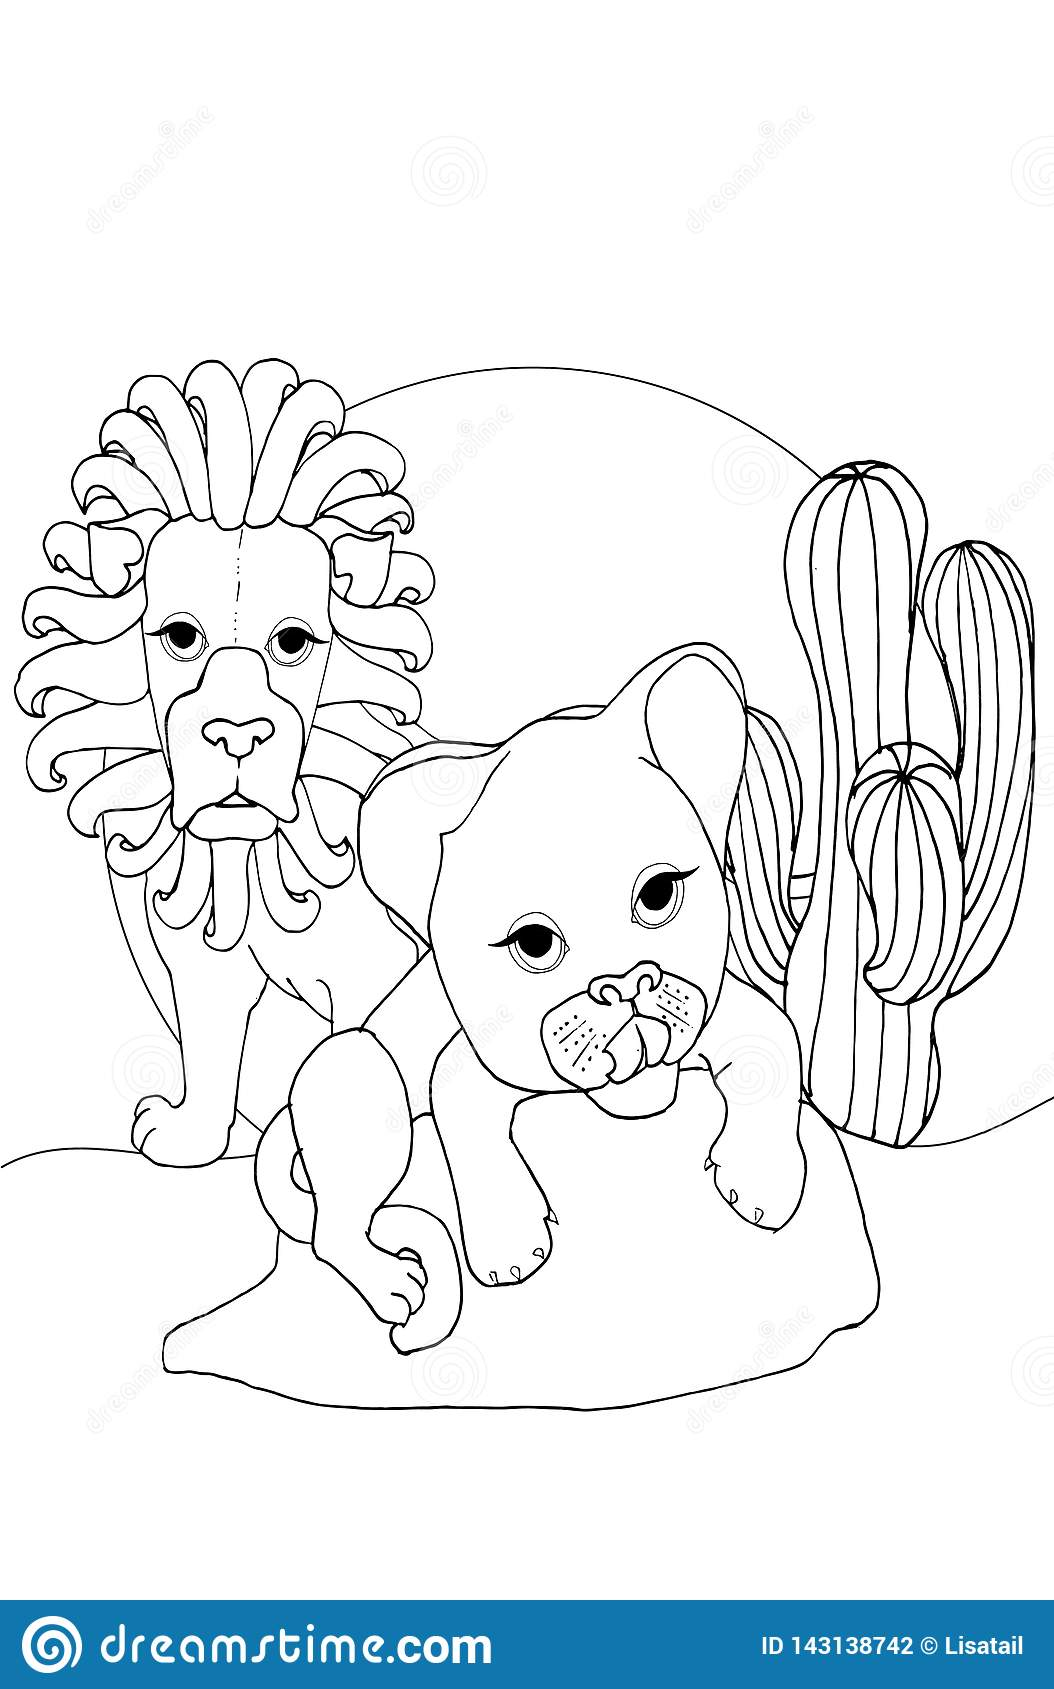 Coloring Children Animals And Children Animals Lion Stock Illustration Illustration Of Drawn Africa 143138742 Cartoon lion outline lion cartoon lion outline outline cartoon sketch symbol icon character cute person cartoon character people human woman colorful animal emblem funny multicolored animals posture. https www dreamstime com coloring children animals lion page outline cartoon cute baby illustration summer book kids image143138742